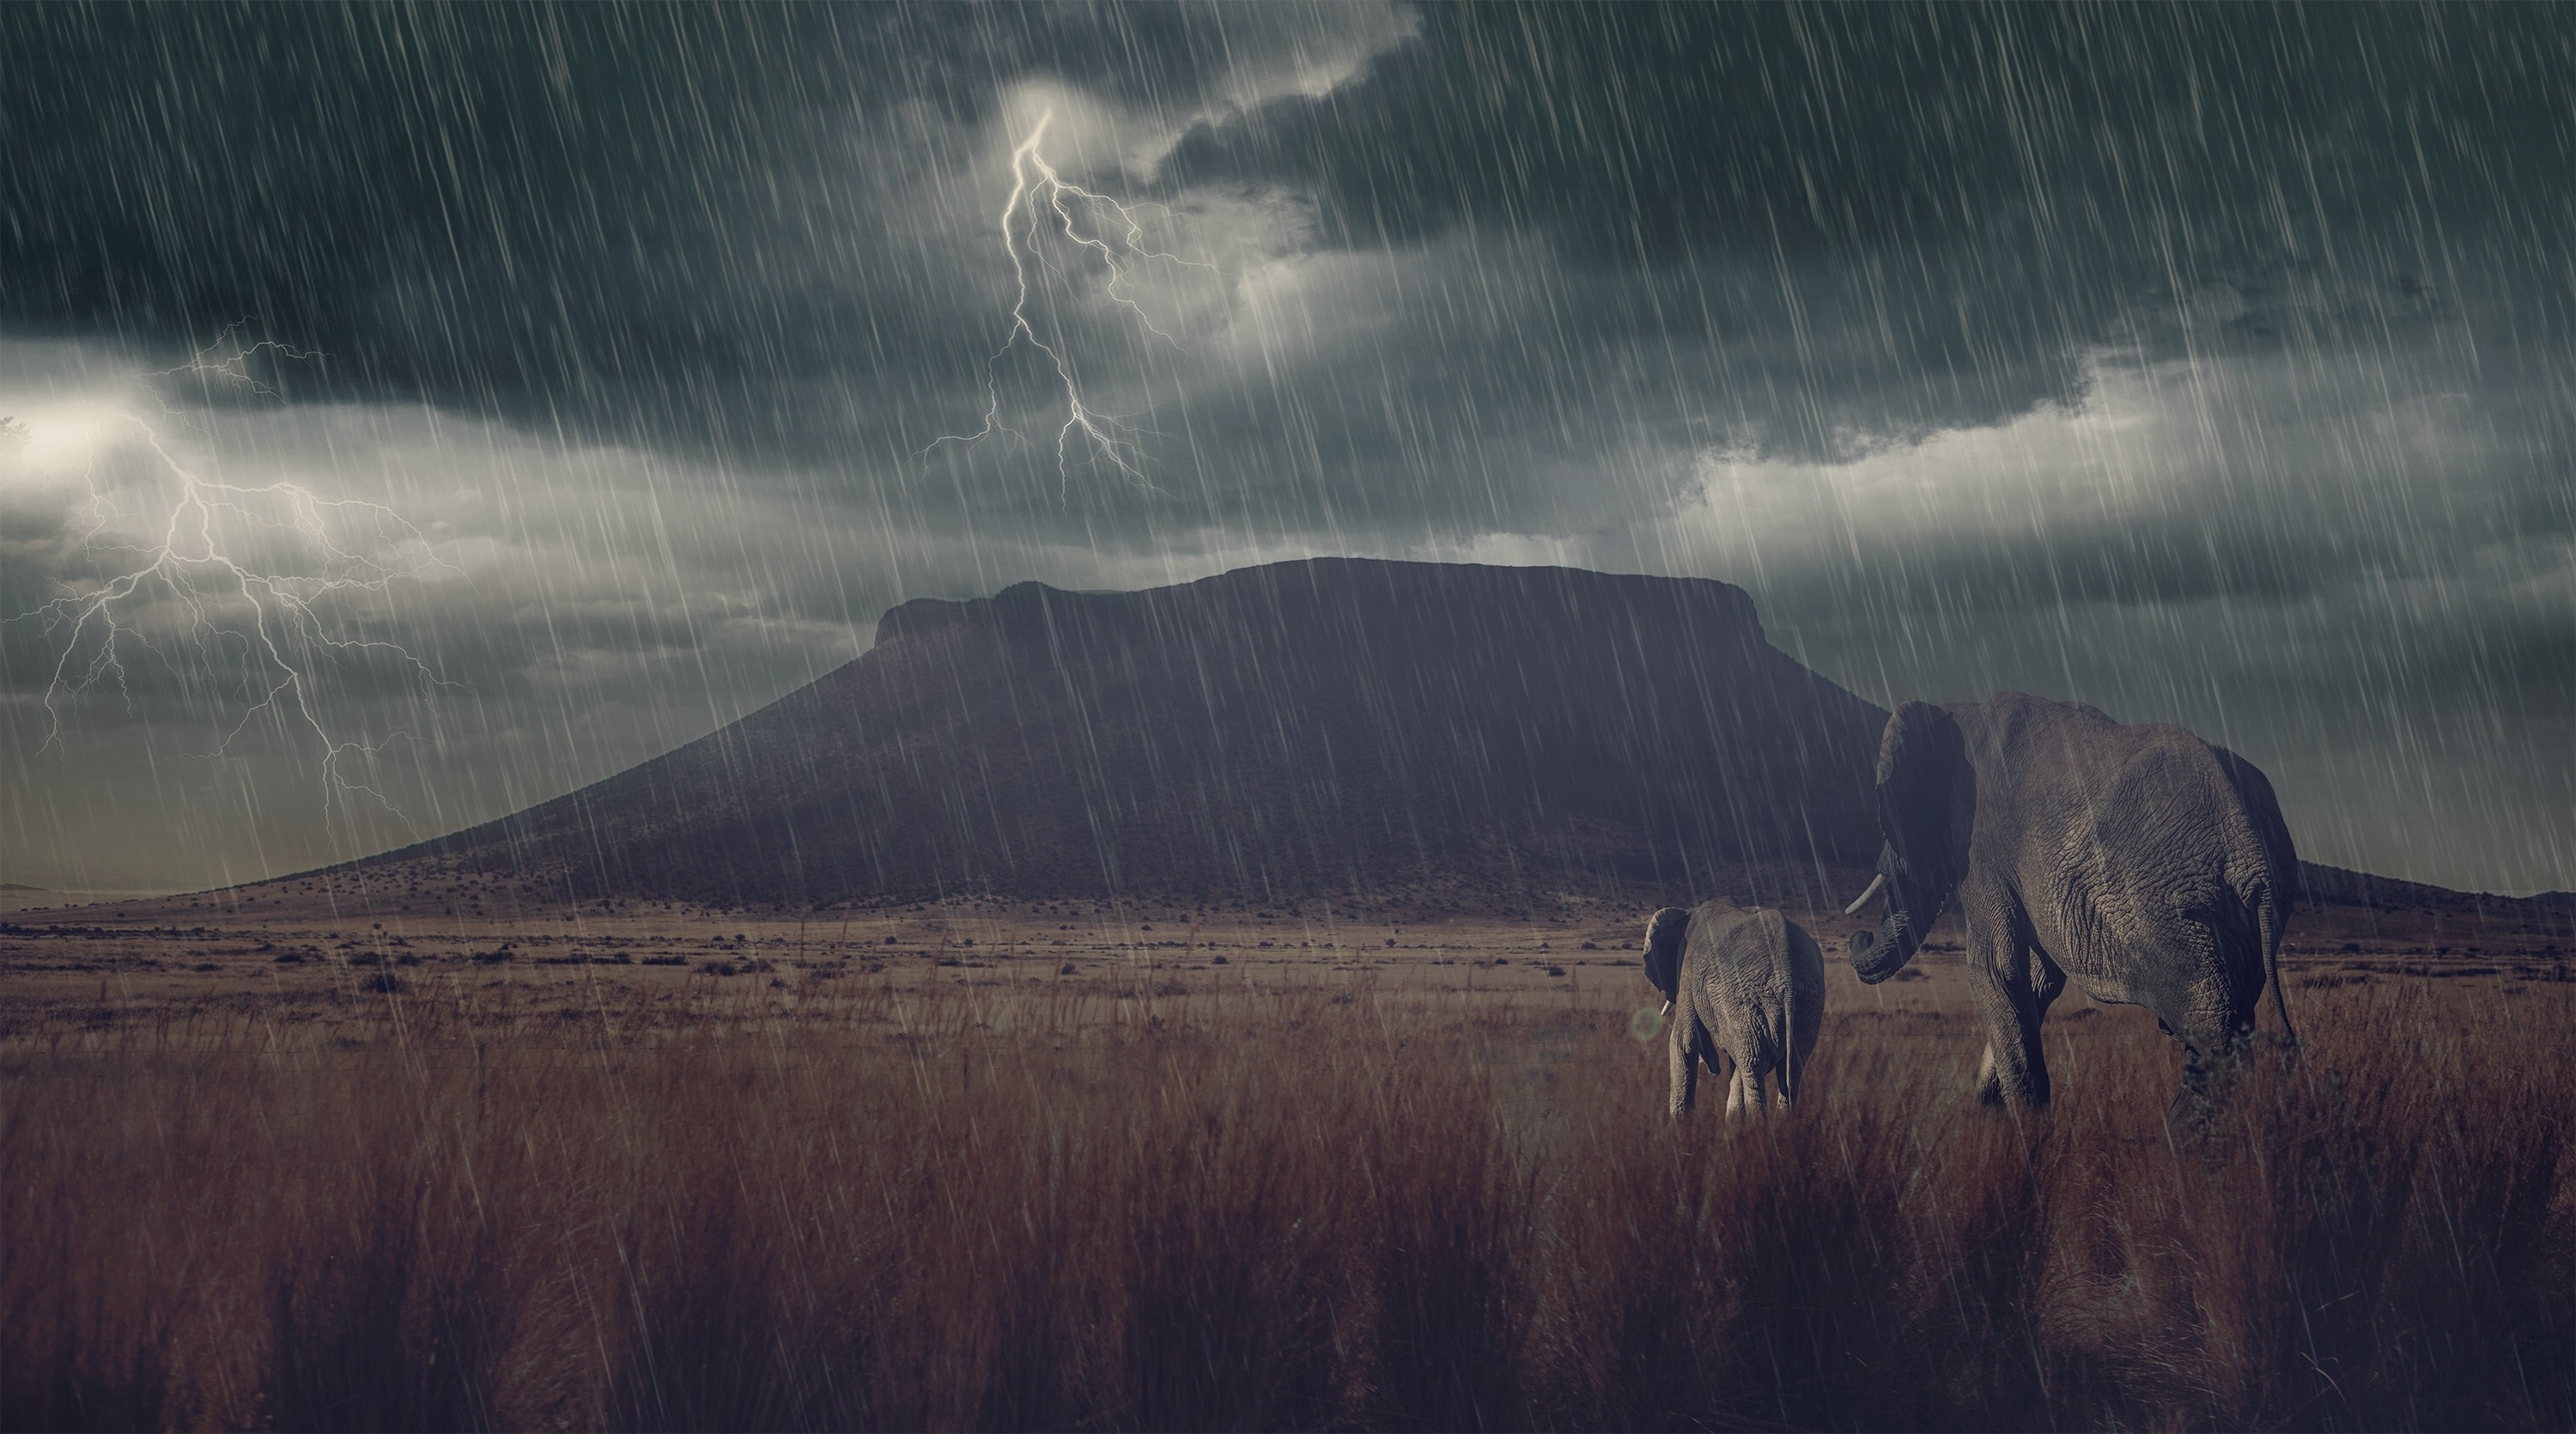 storm in mountains 1920x1080 wallpaper - photo #14